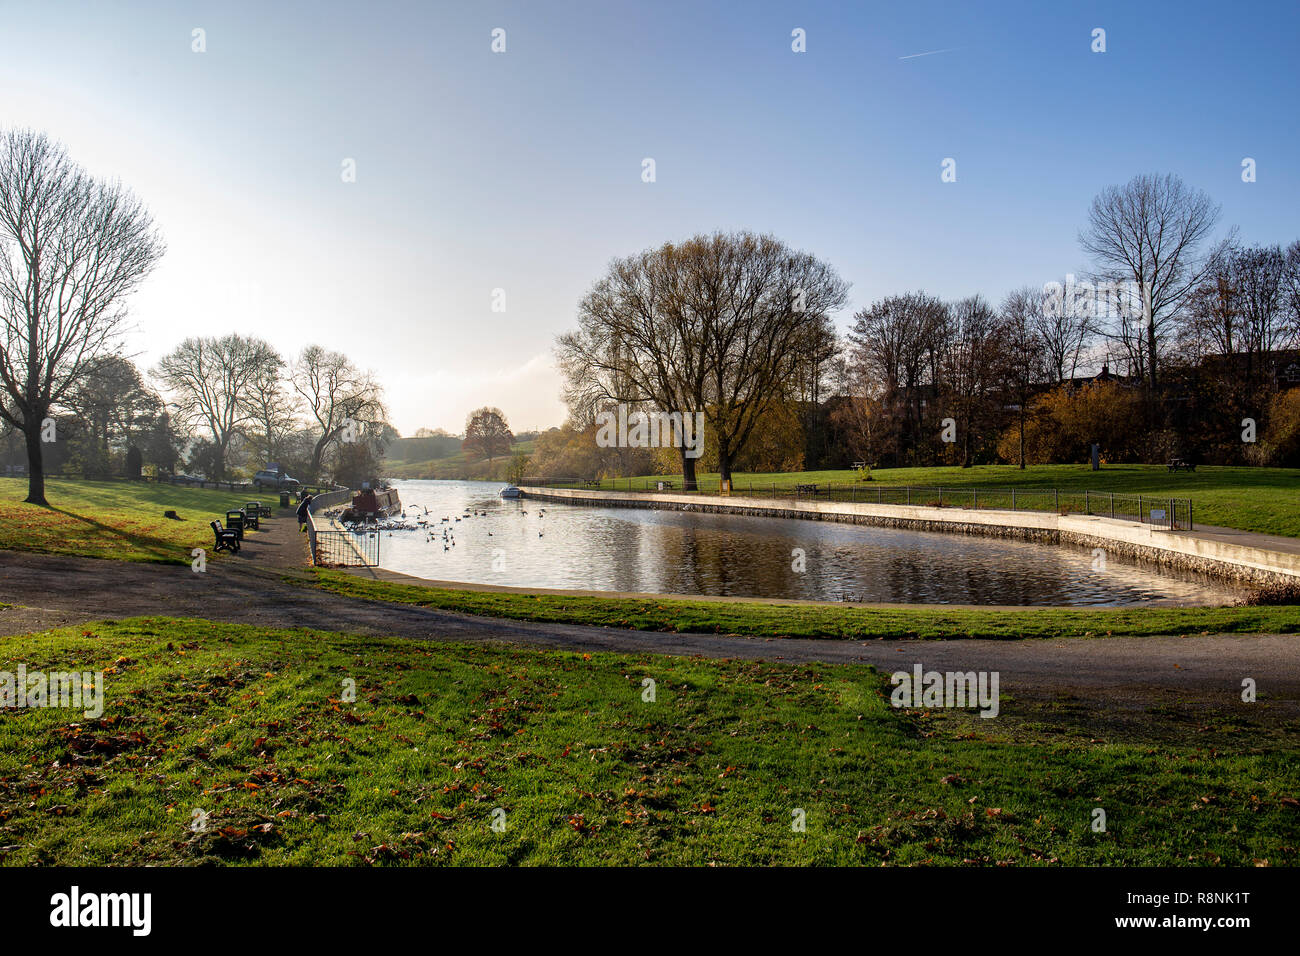 River Weaver Stock Photos Amp River Weaver Stock Images Alamy